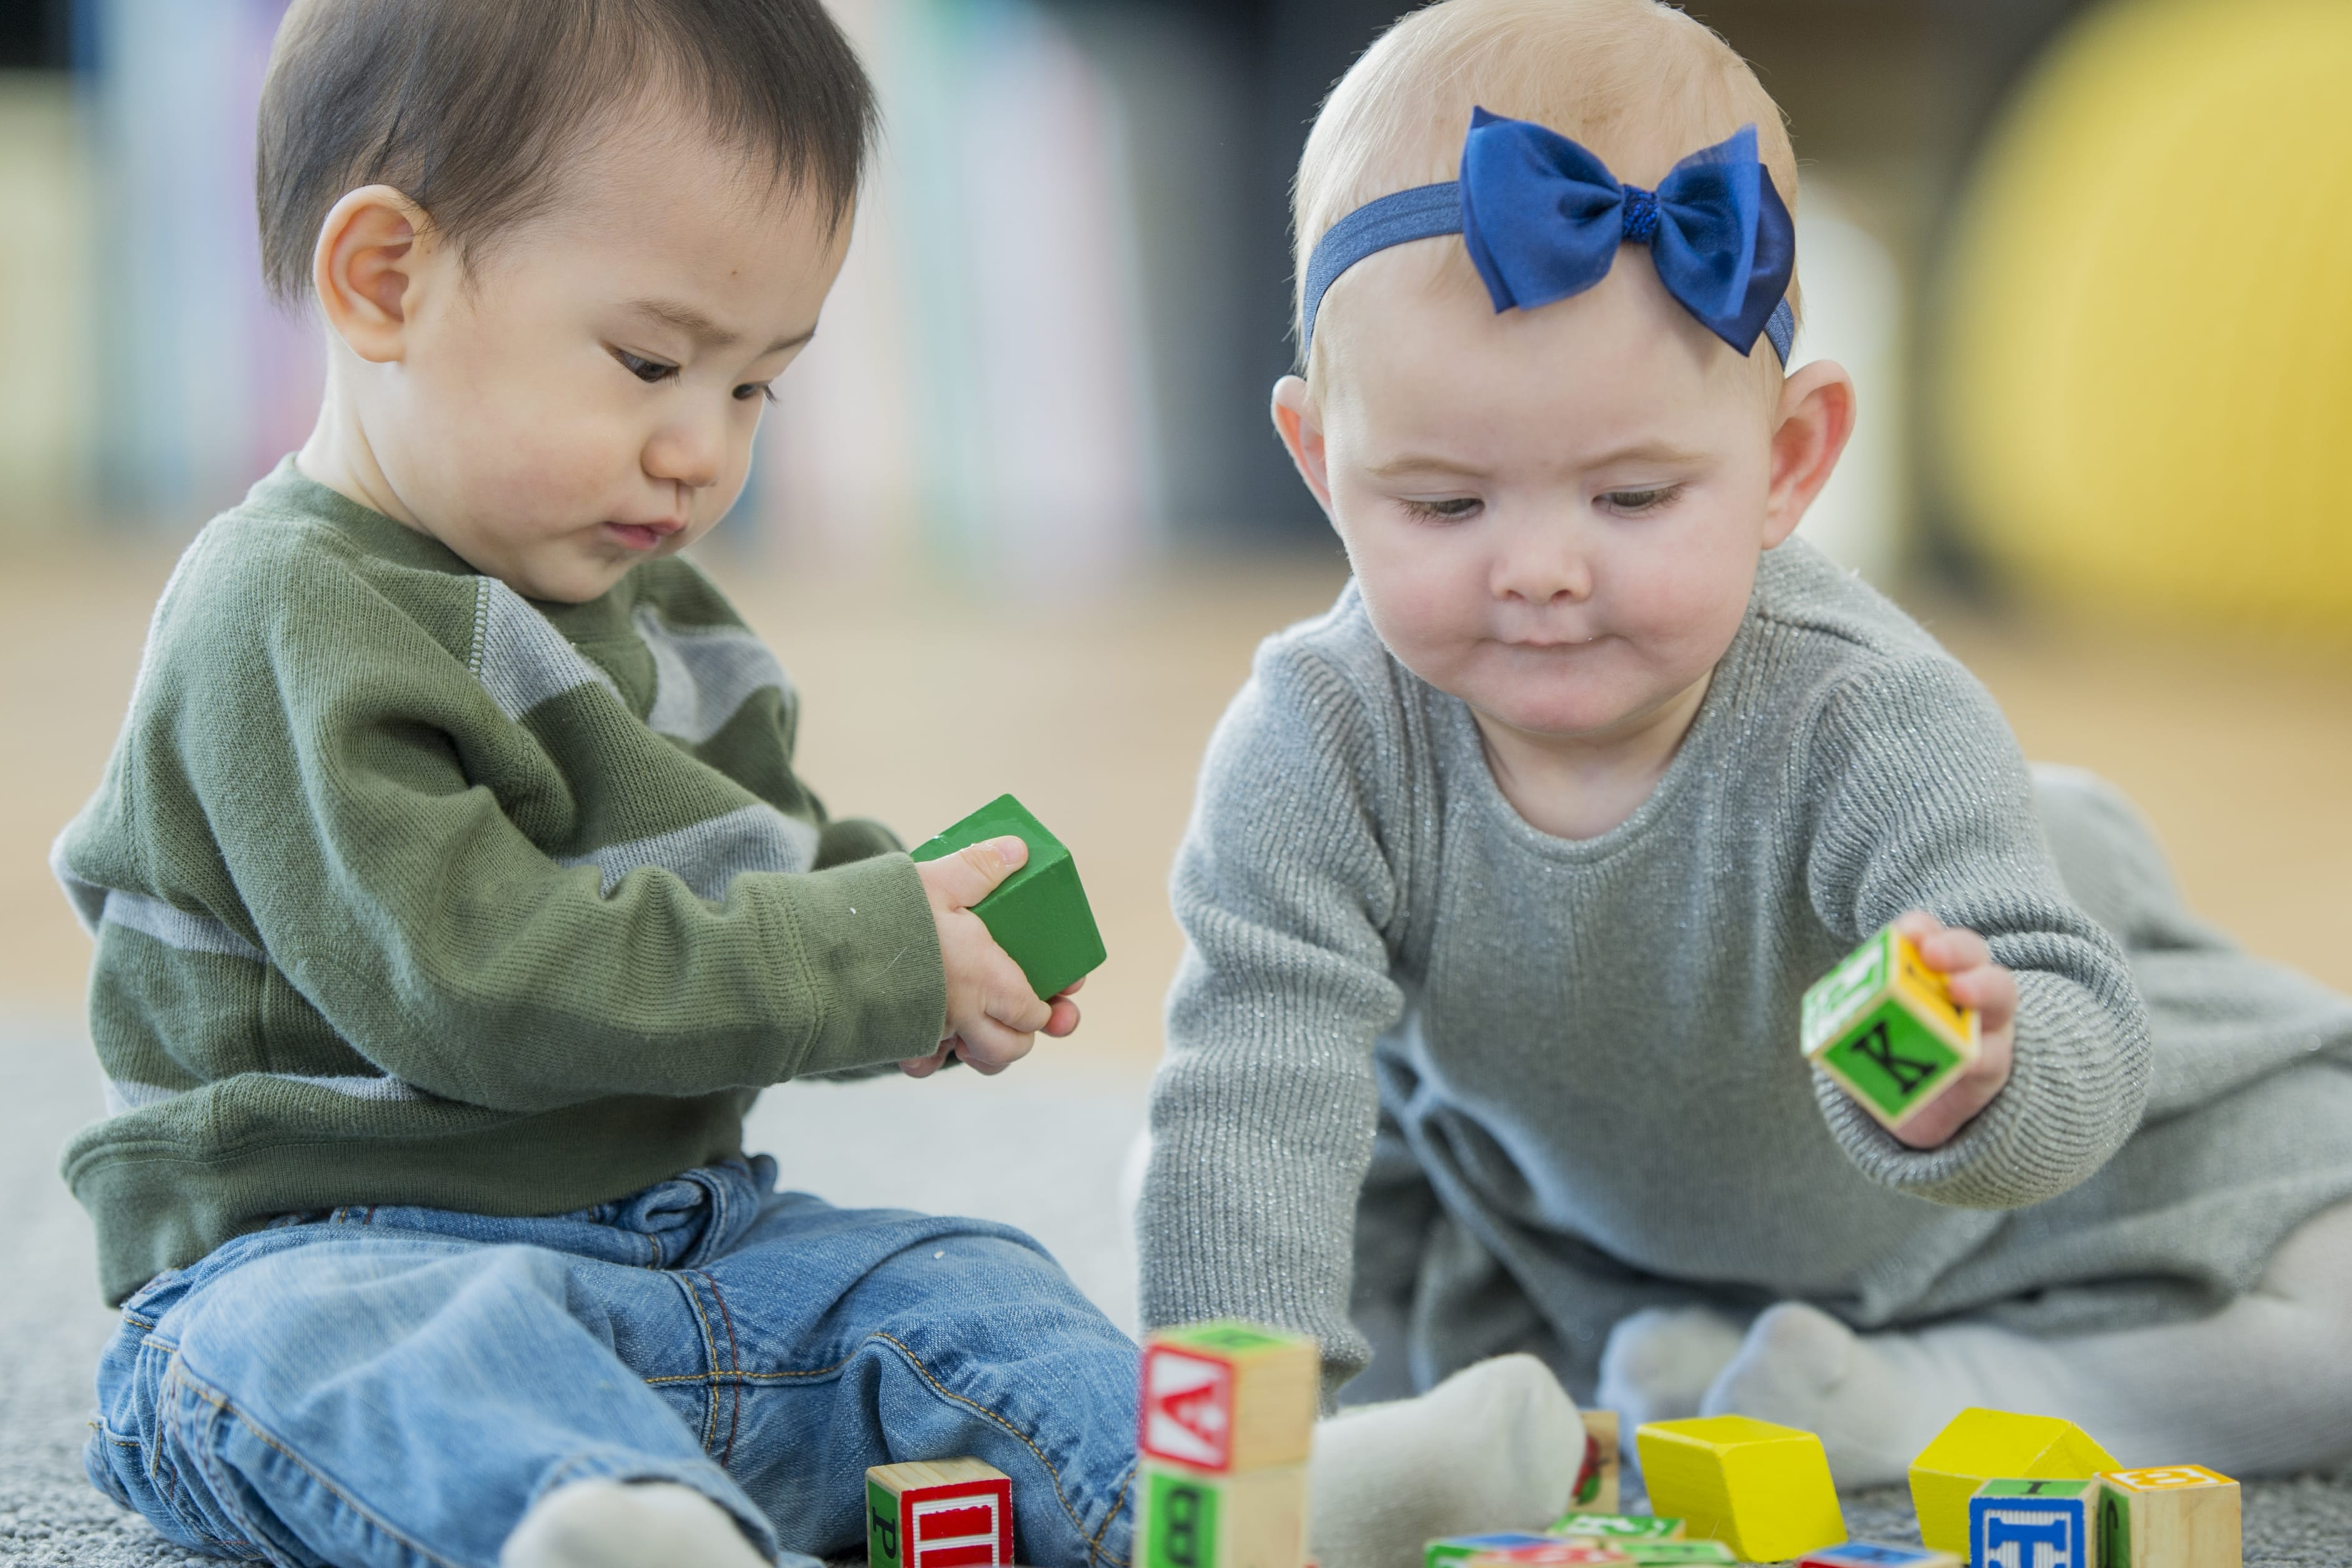 'What Should I look for in a Daycare to Ensure My Child's Safety?